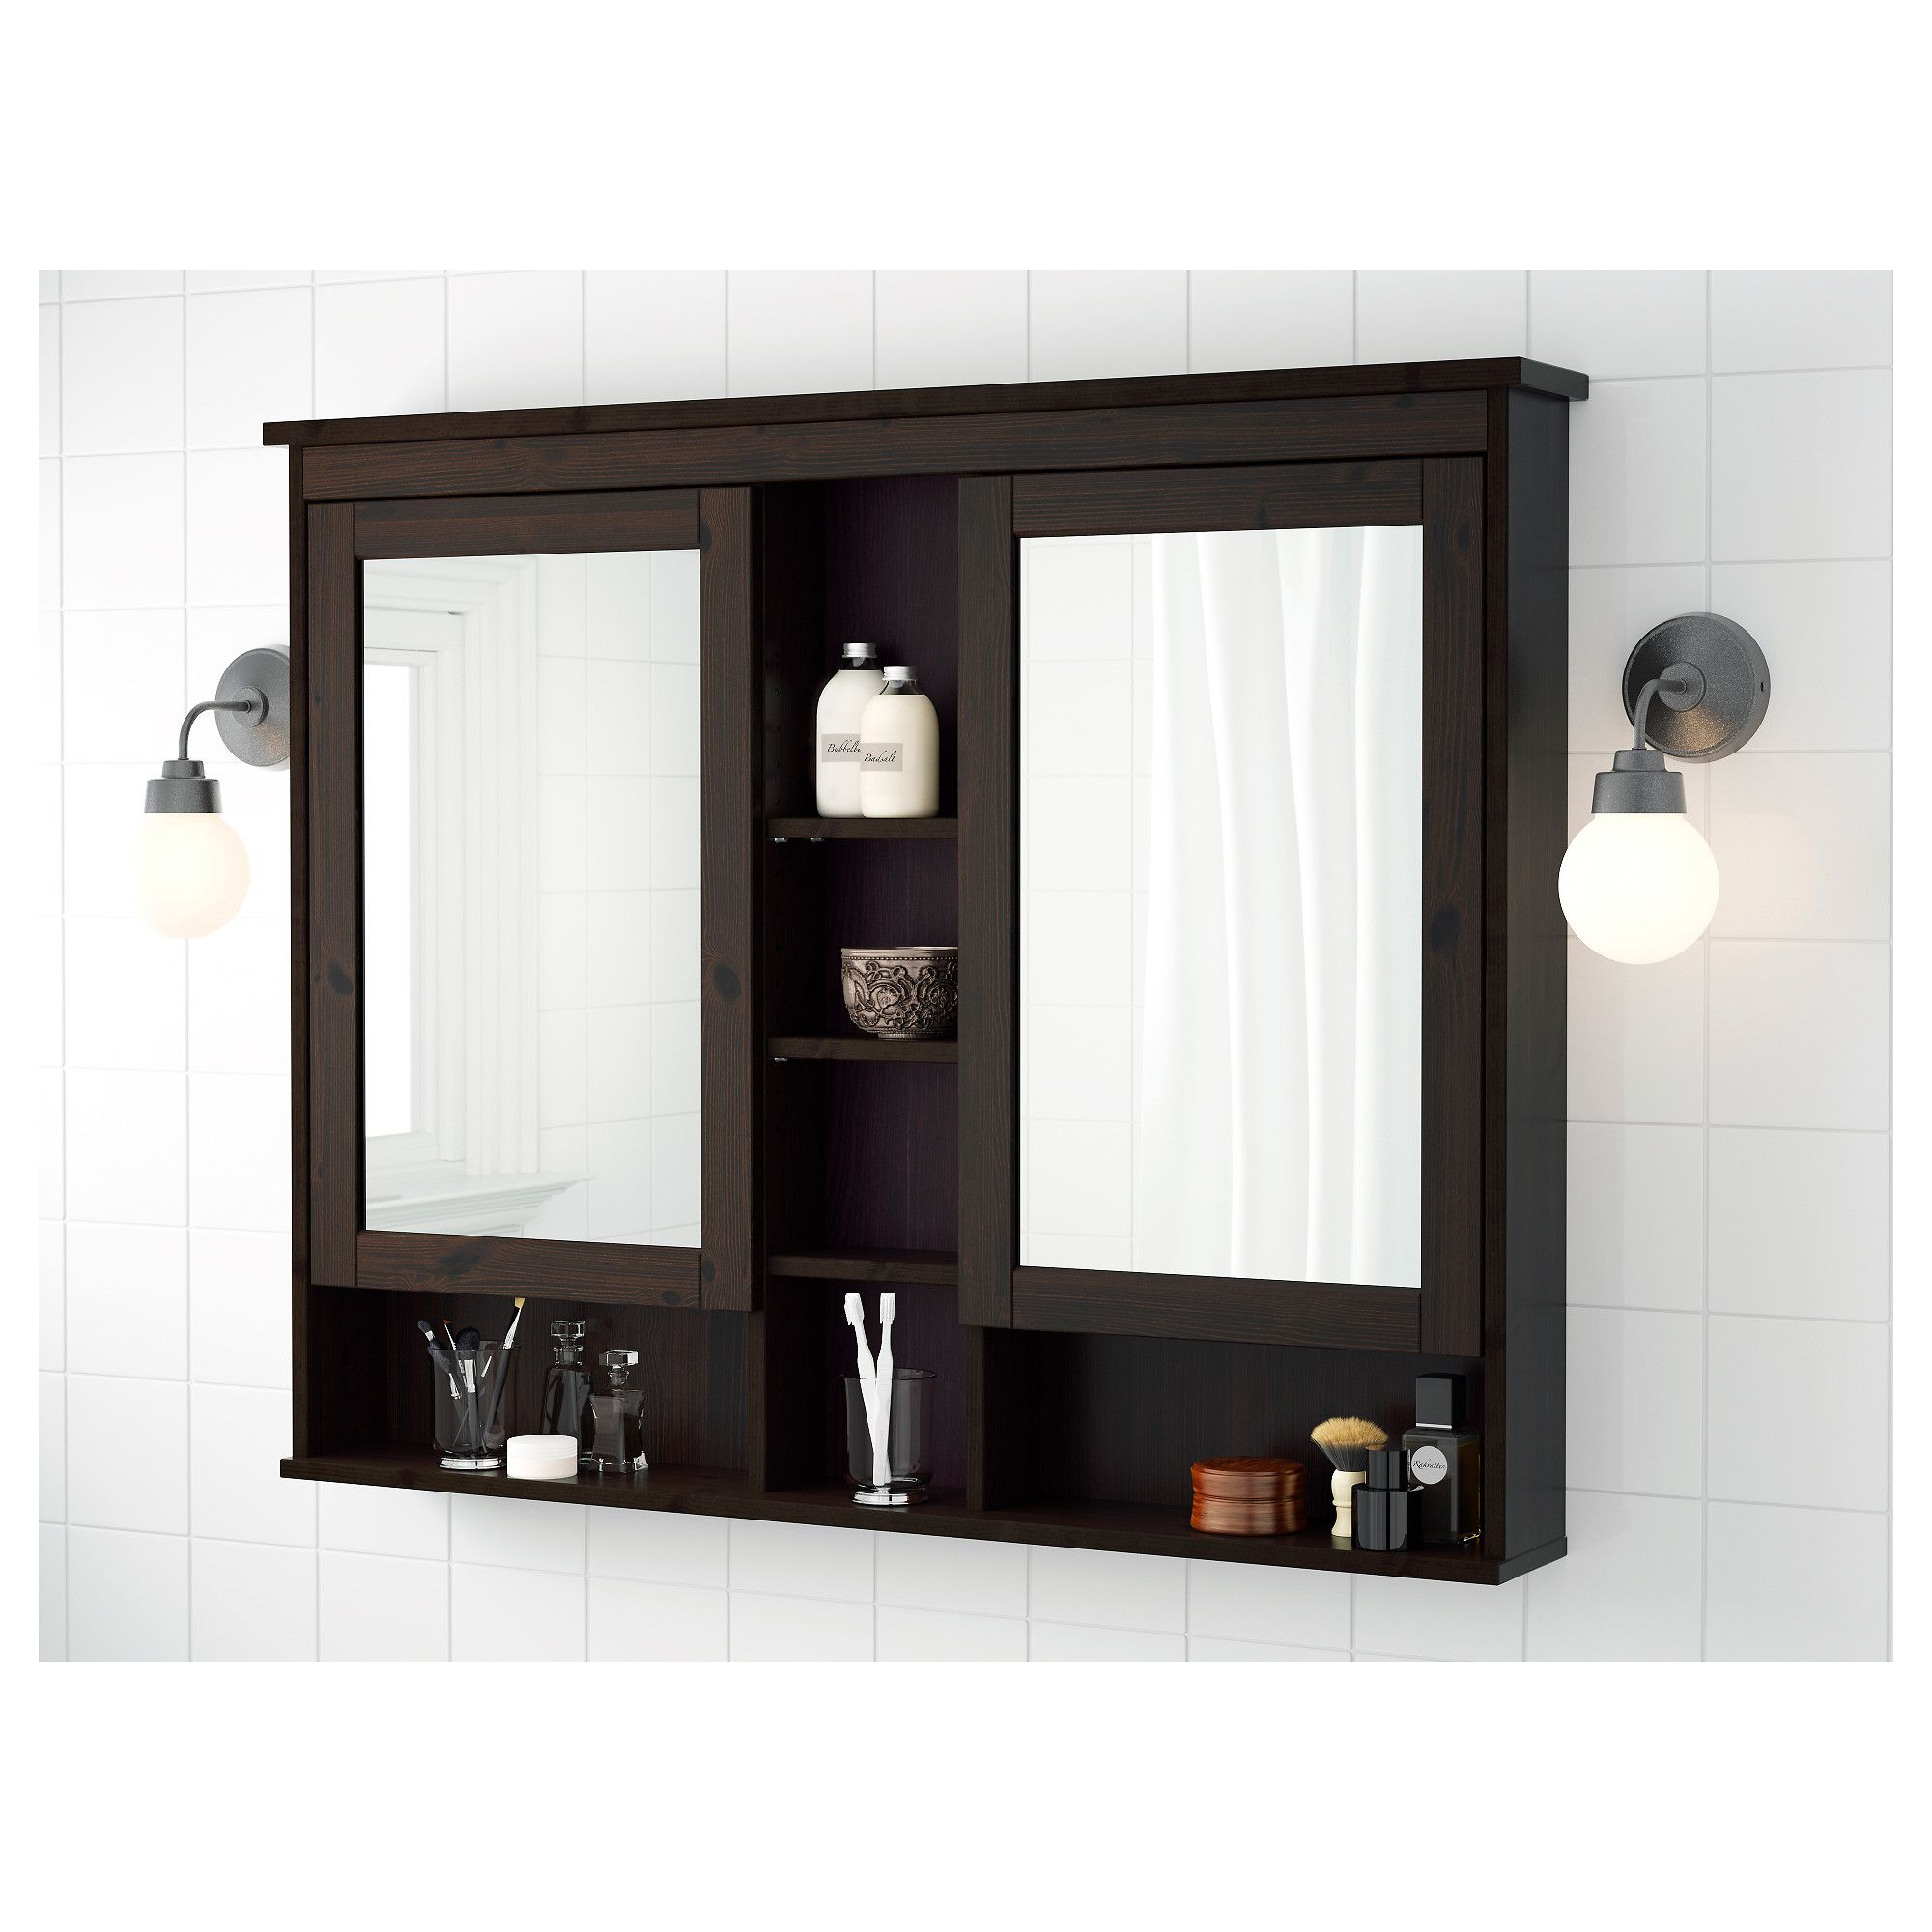 Best Ikea Hemnes Mirror Cabinet With 2 Doors Black Brown 400 x 300